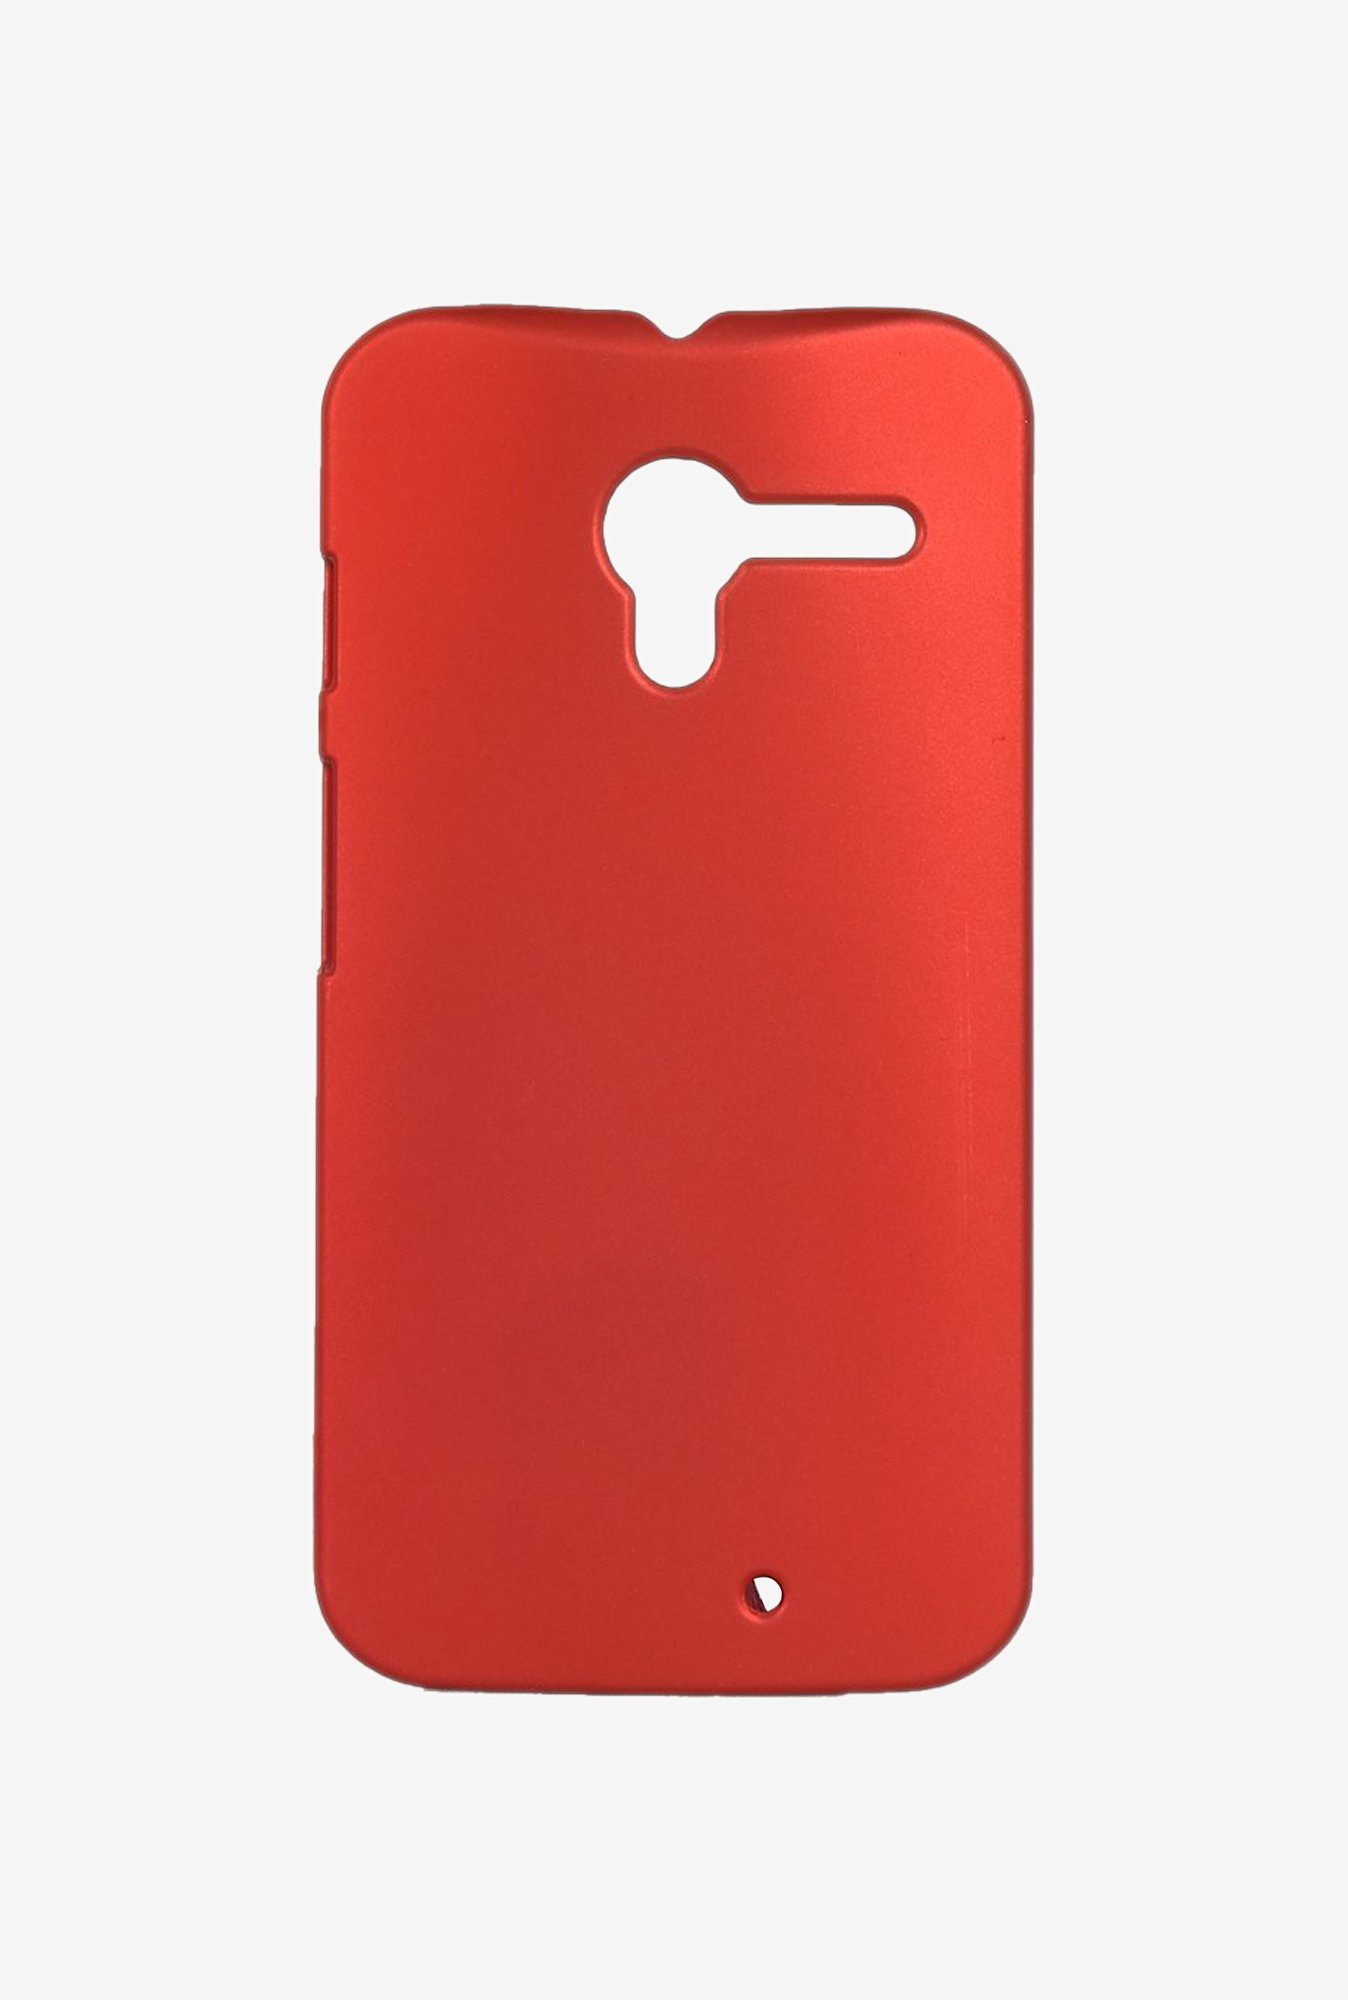 iAccy MTC006 Back Cover Maroon for Moto X